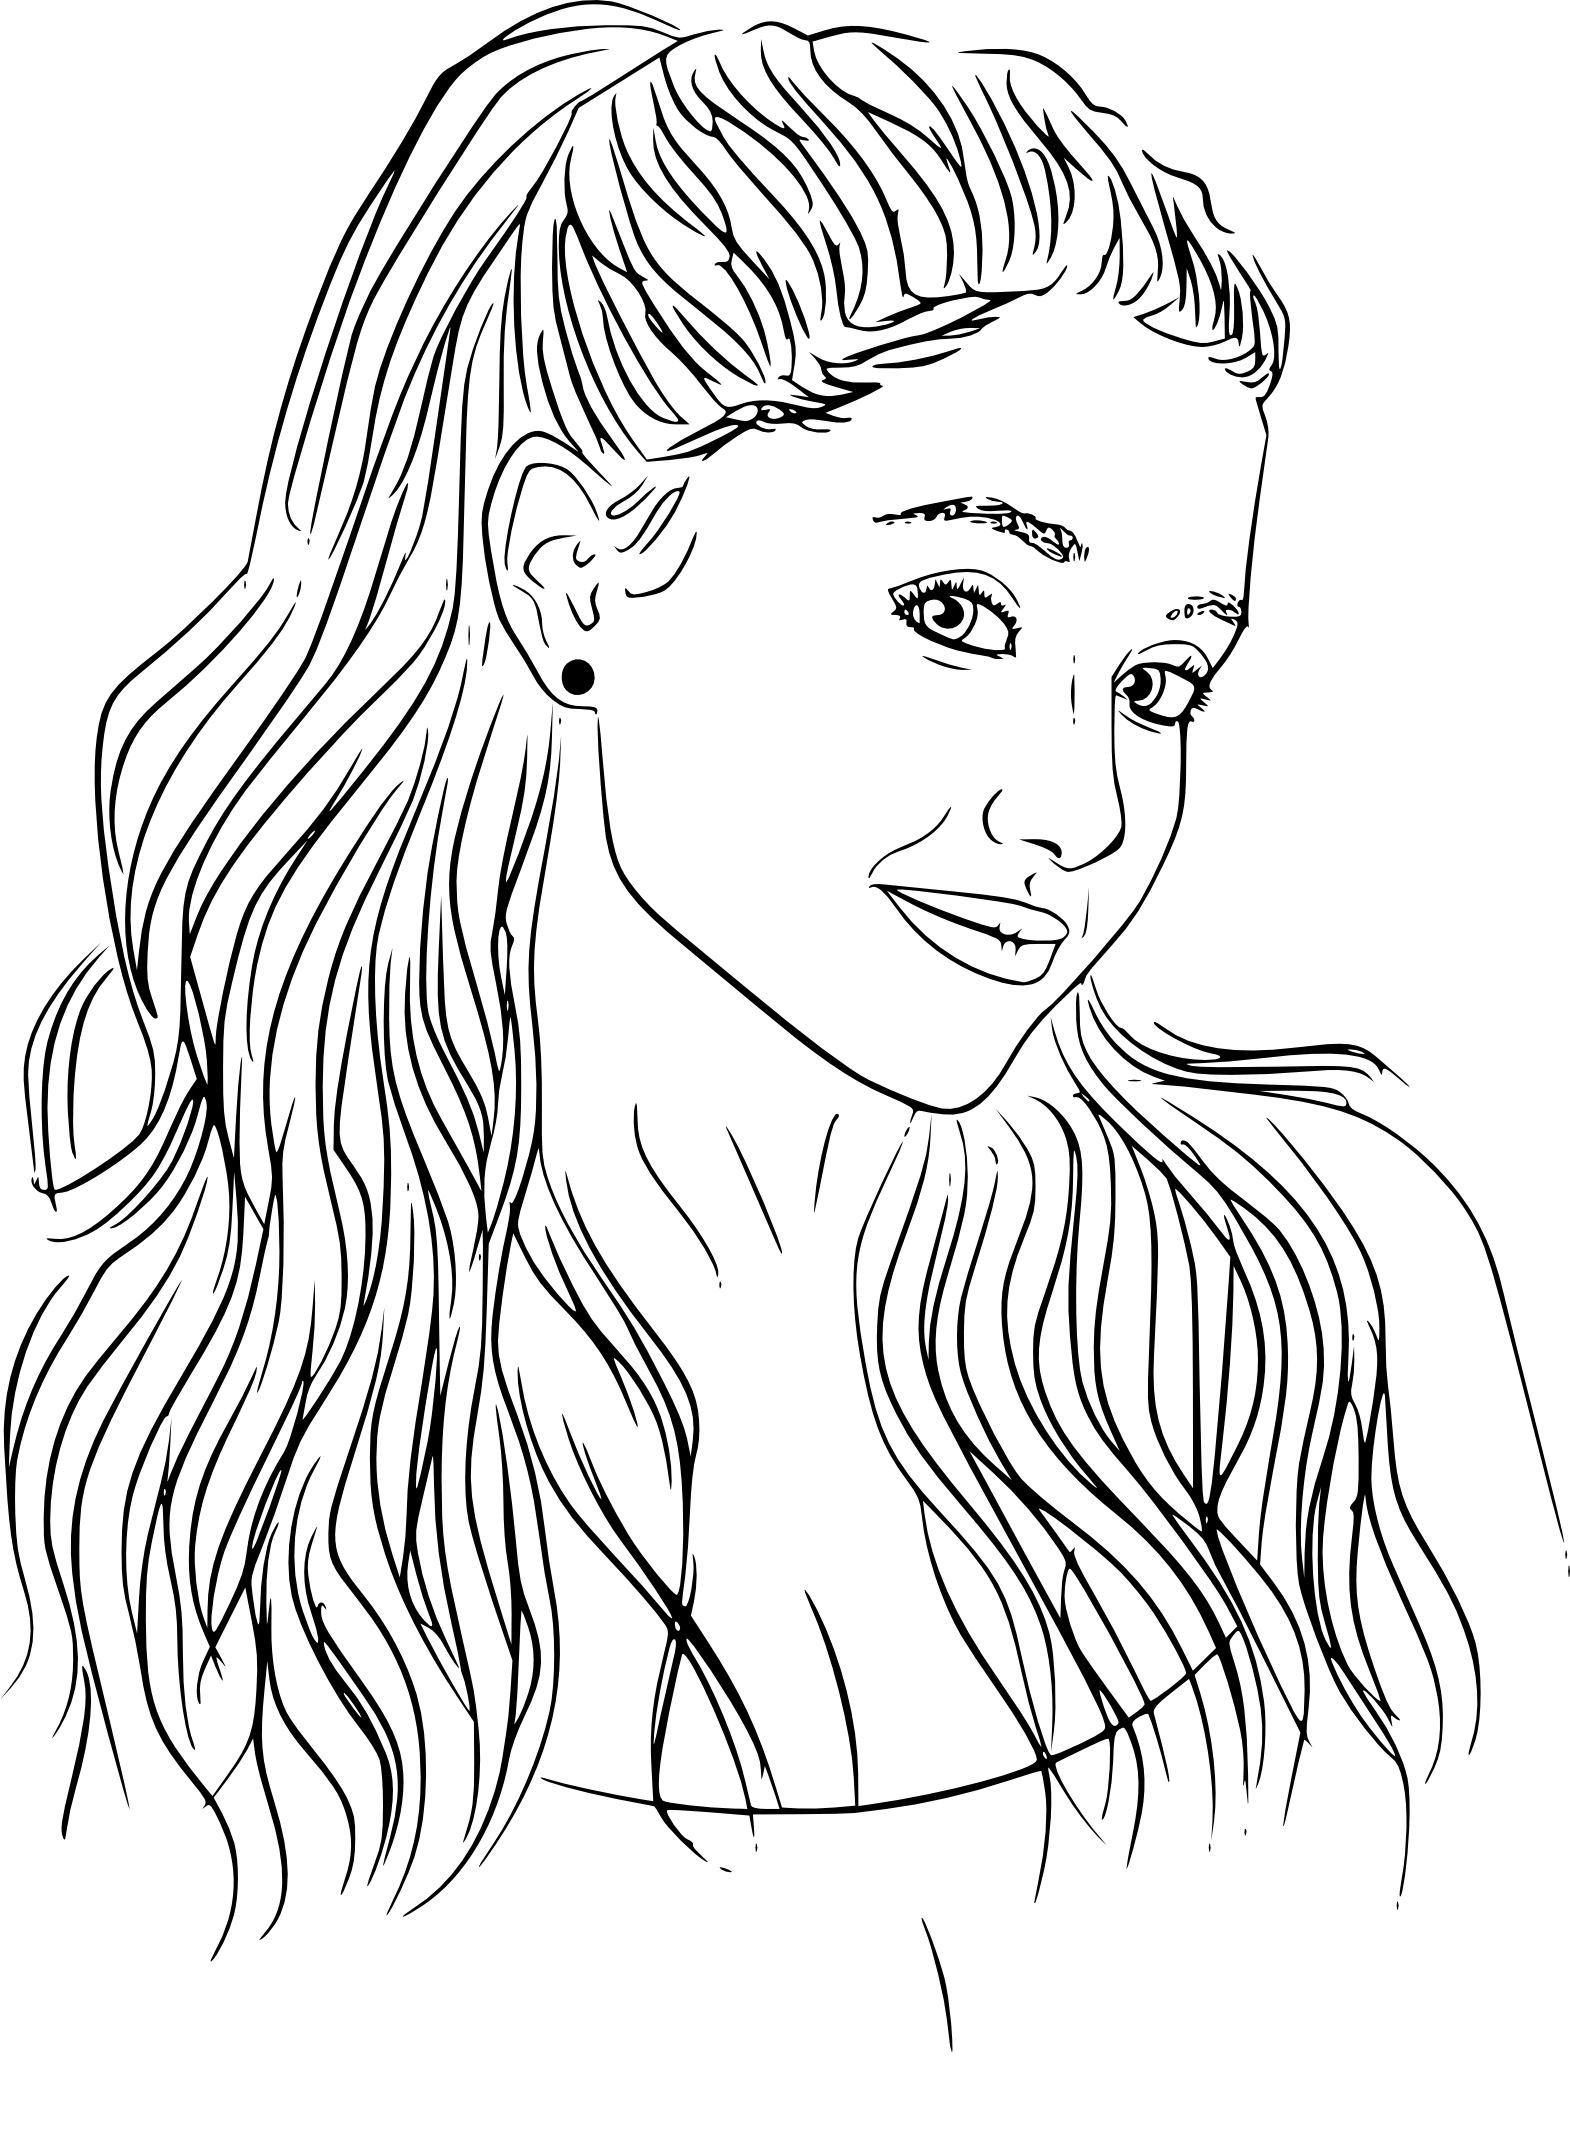 Cute Ariana Grande Coloring Pages - Thekidsworksheet